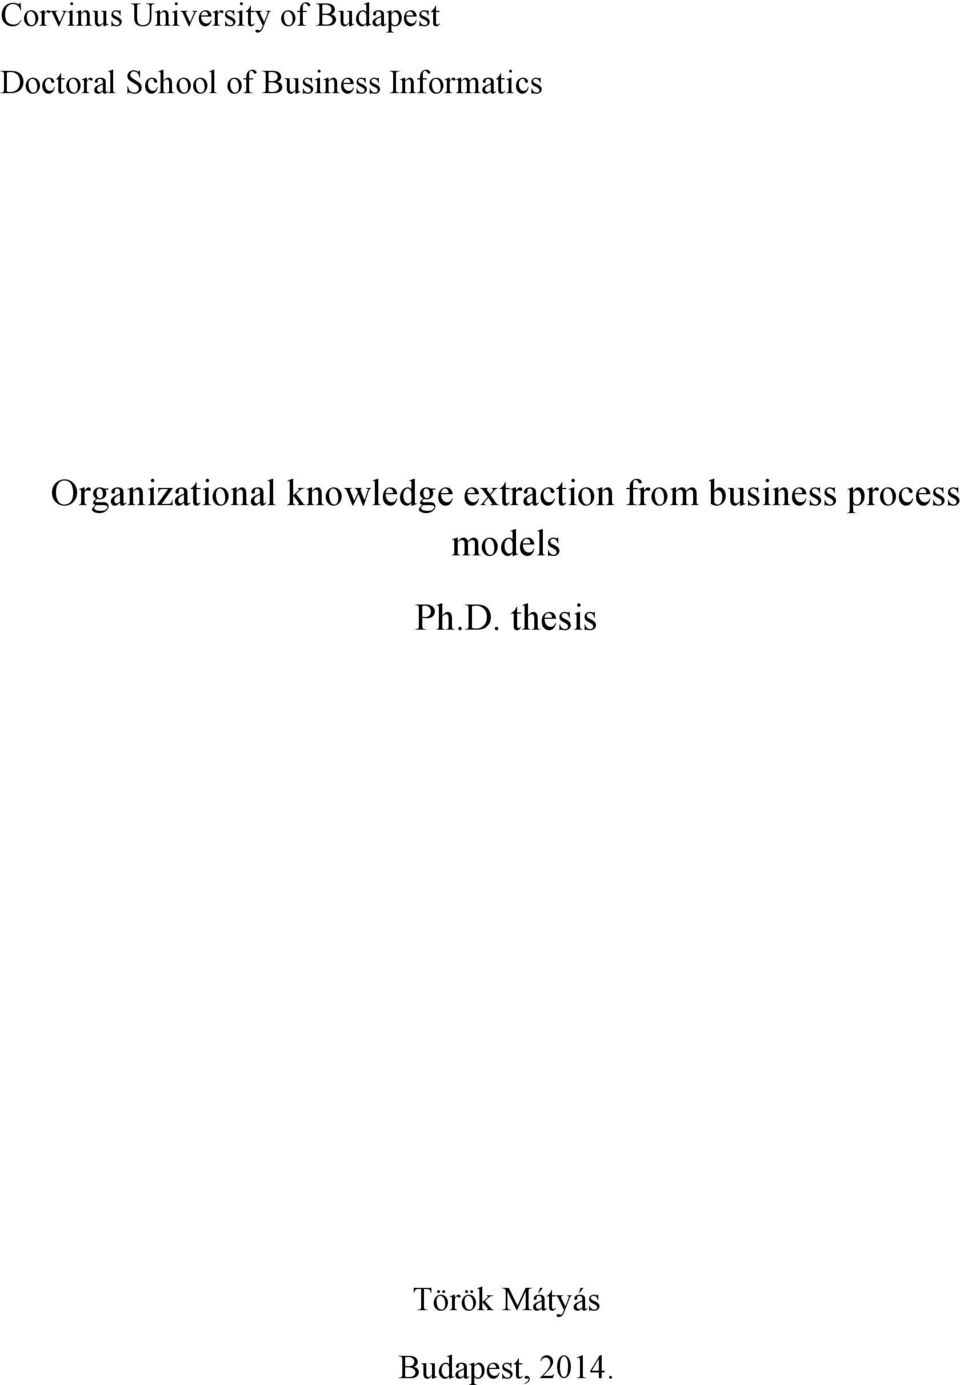 Organizational knowledge extraction from